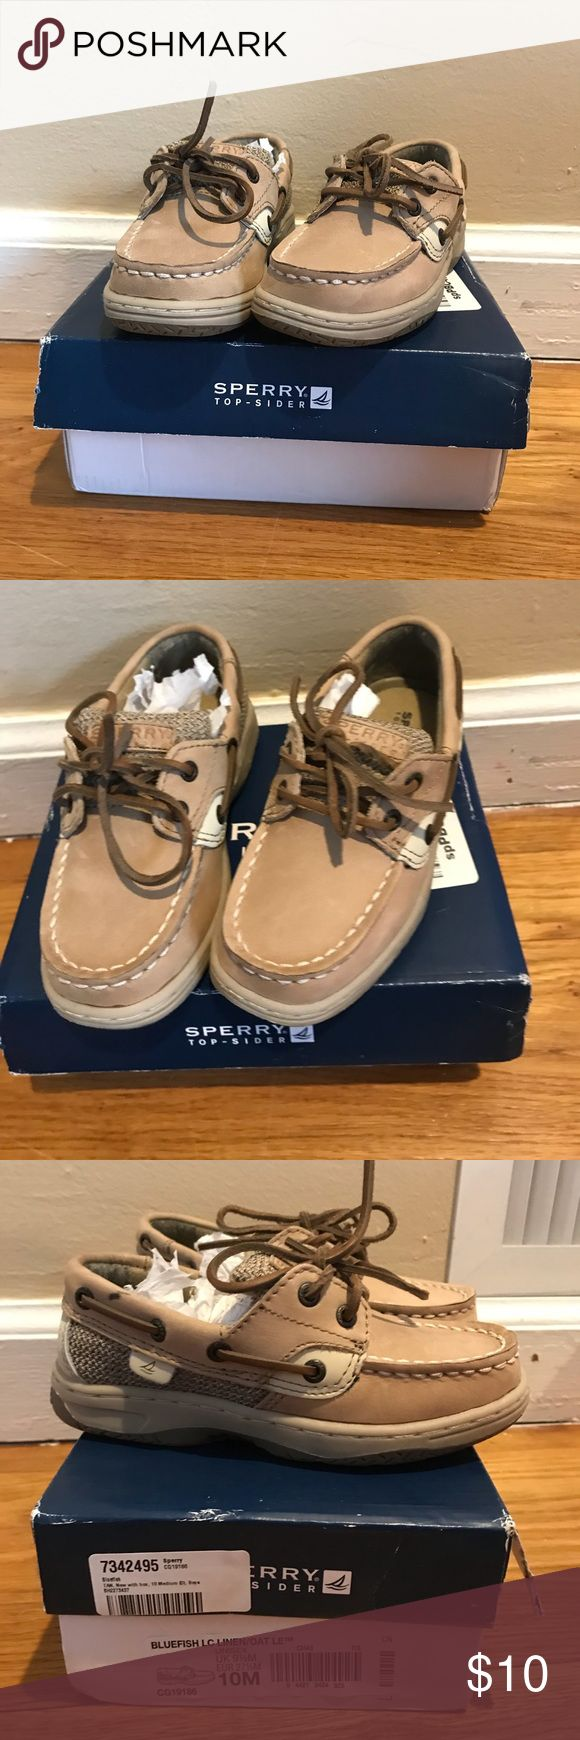 Boys Sperry Top Sider Boat Shoes Brand new never worn Sperry Boat Shoes. Sperry Top-Sider Shoes Sneakers